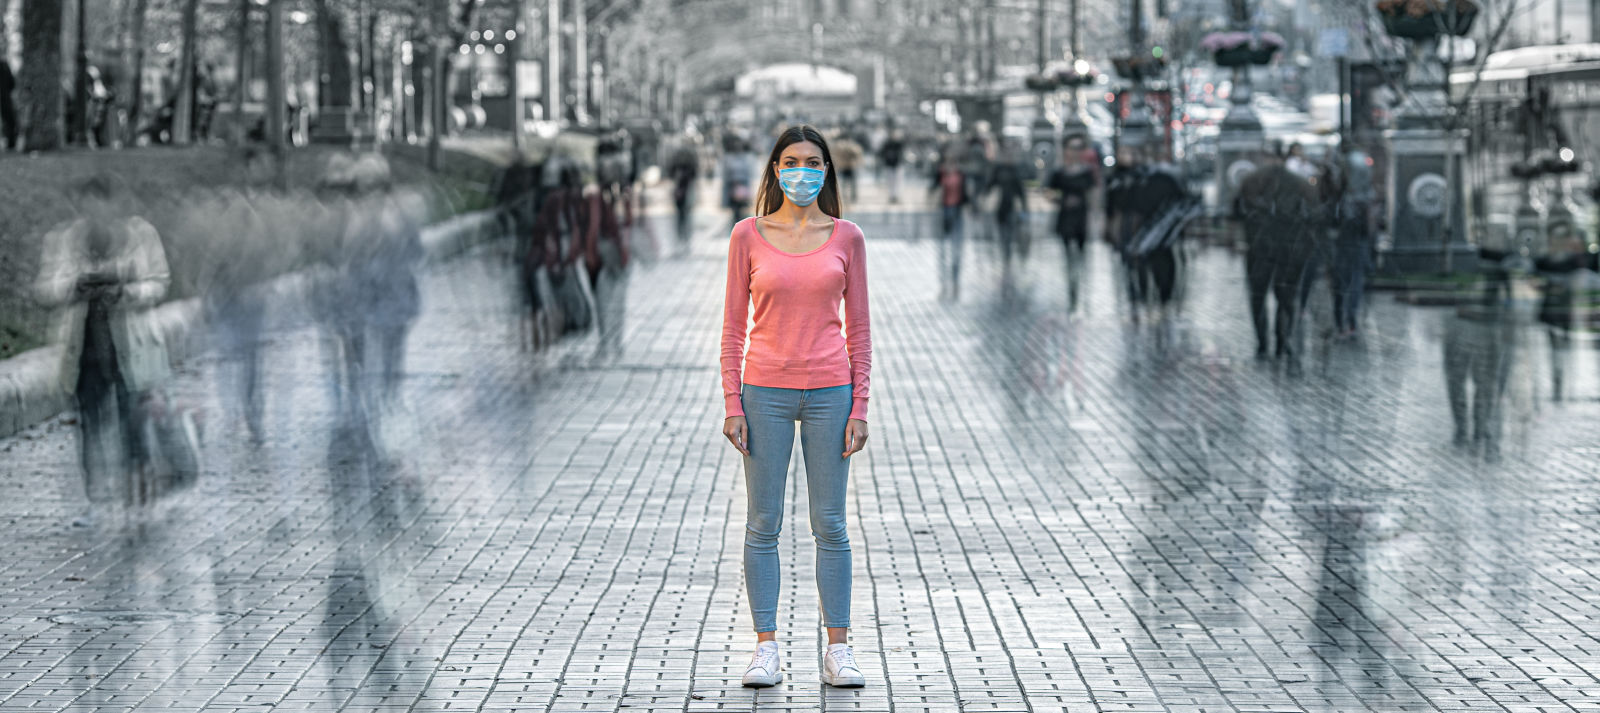 Impressions and Other Assets/coronavirus_covid_mask_young_woman_aloone_street_city_crowd_AdobeStock_329119752_etrjgu